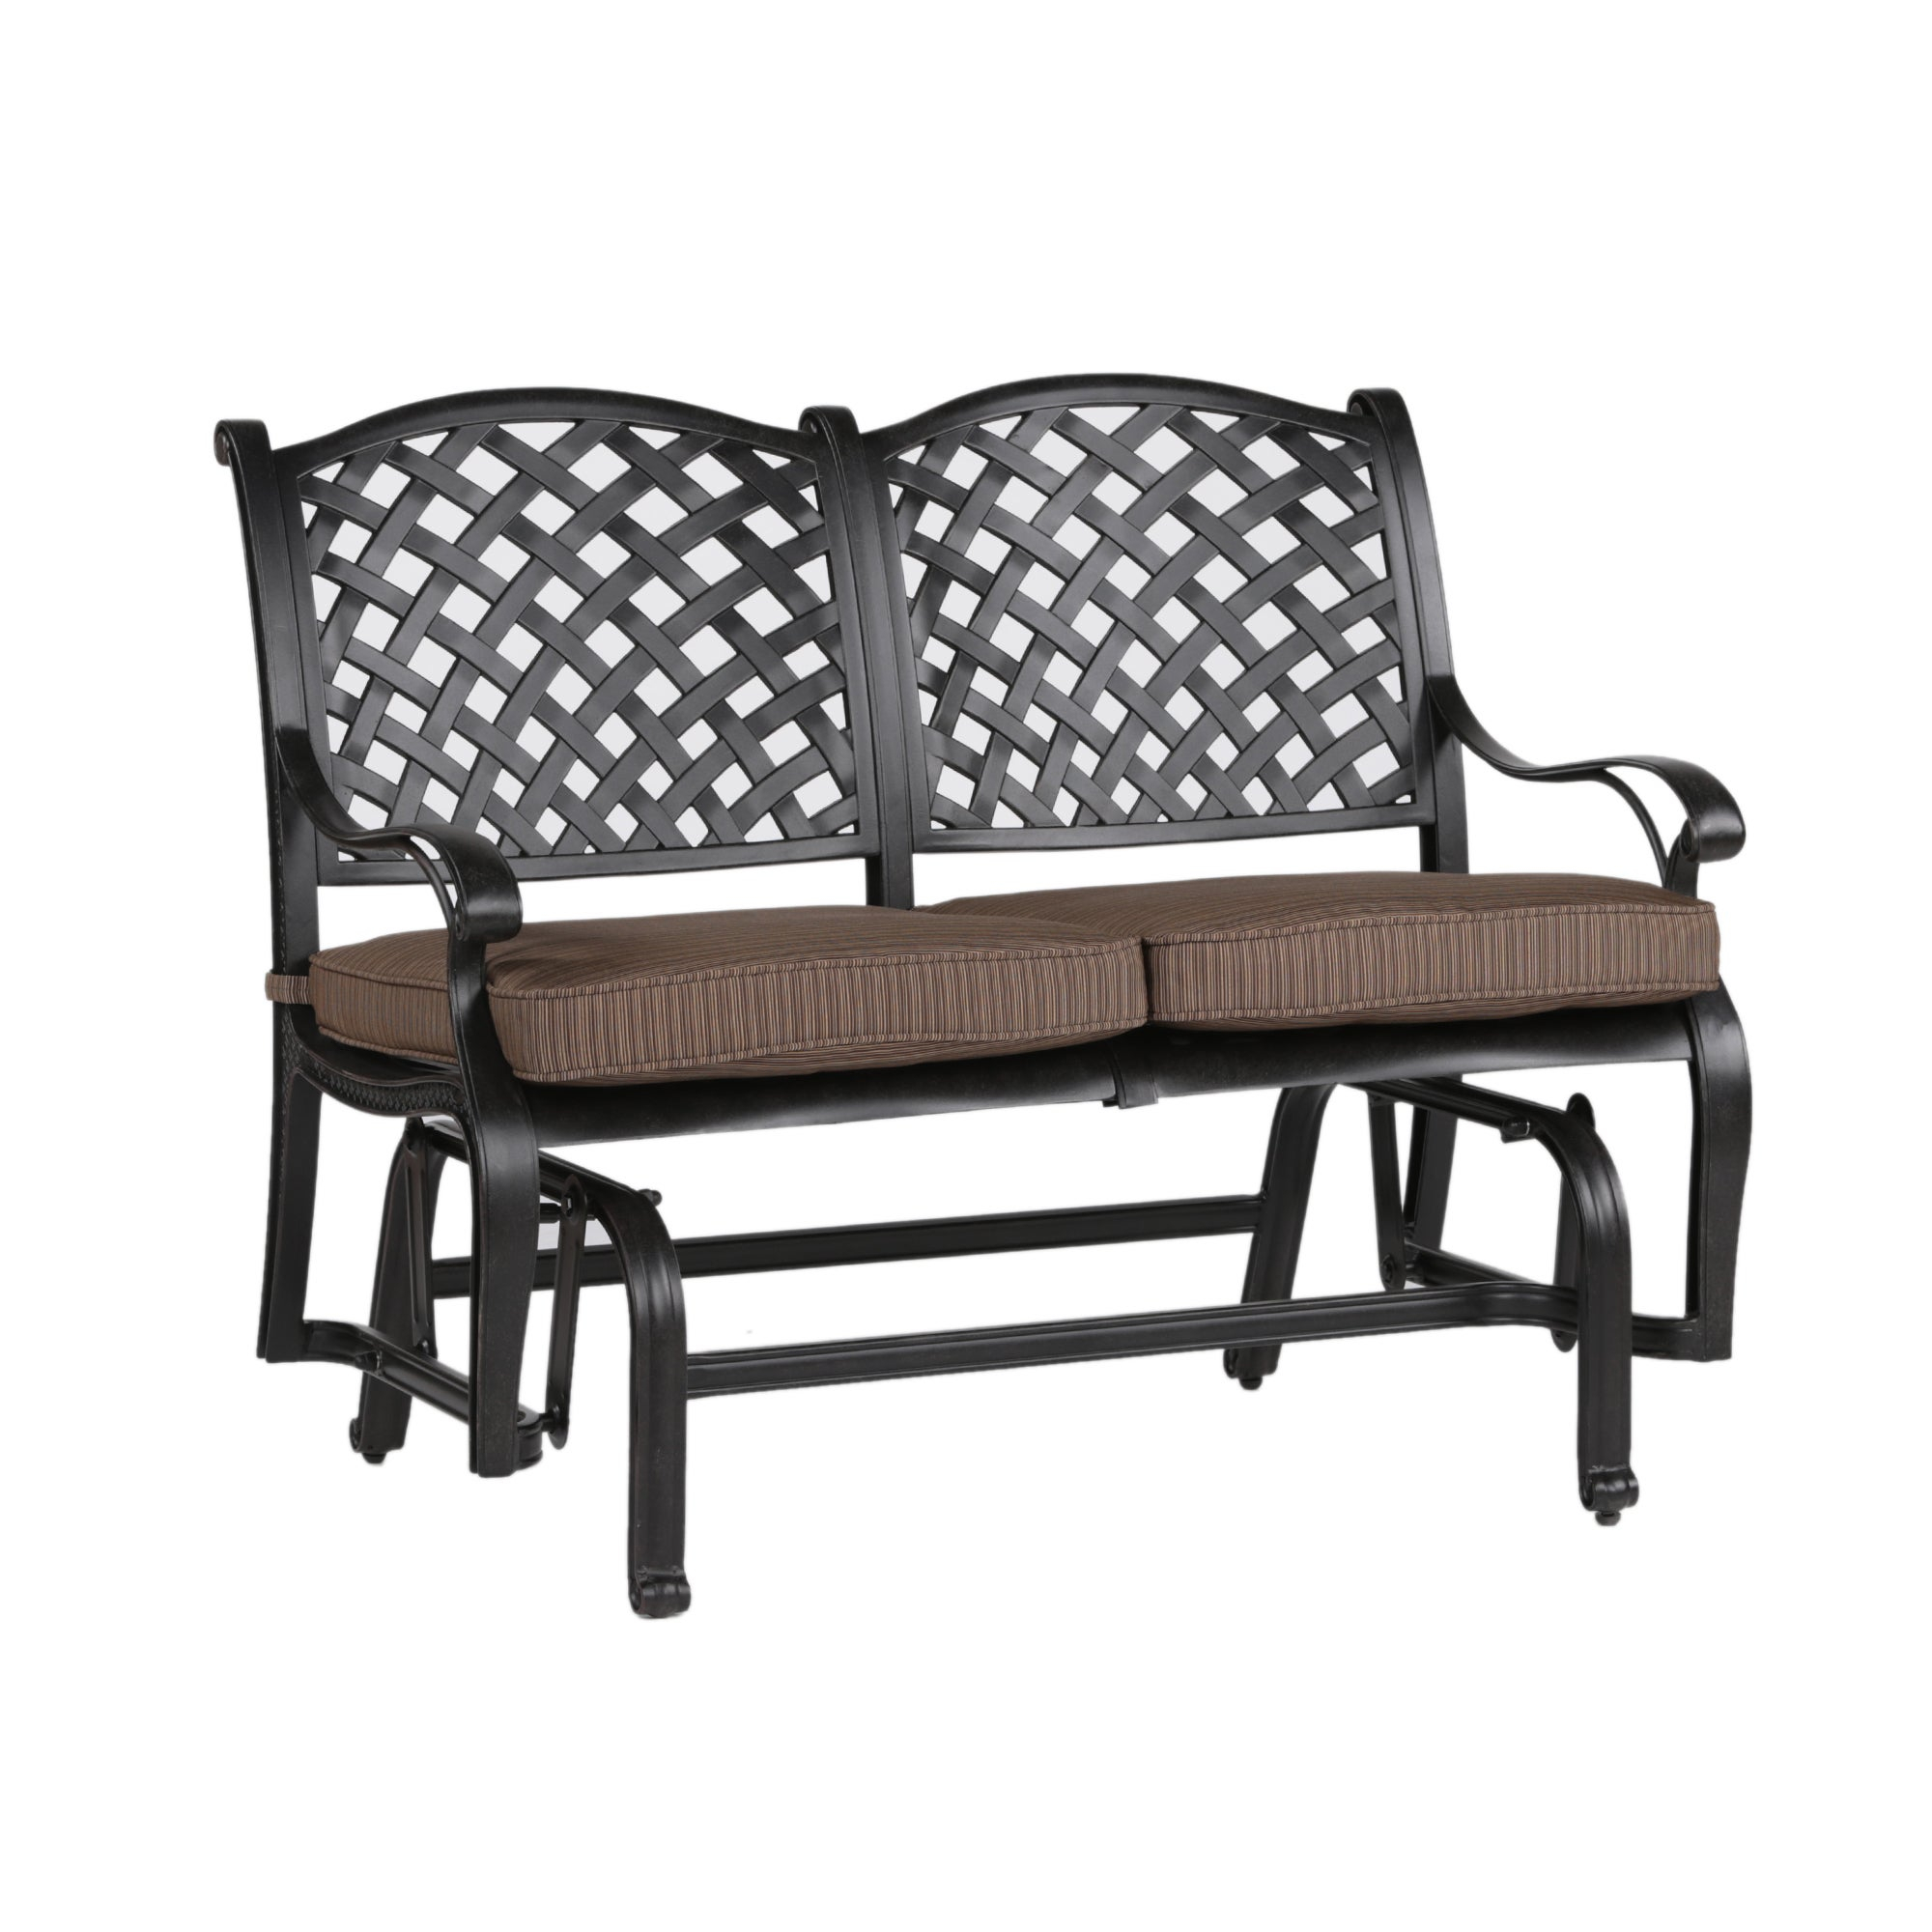 South Ponto Aluminum Bench Glider With Cushion Regarding Cushioned Glider Benches With Cushions (View 5 of 27)